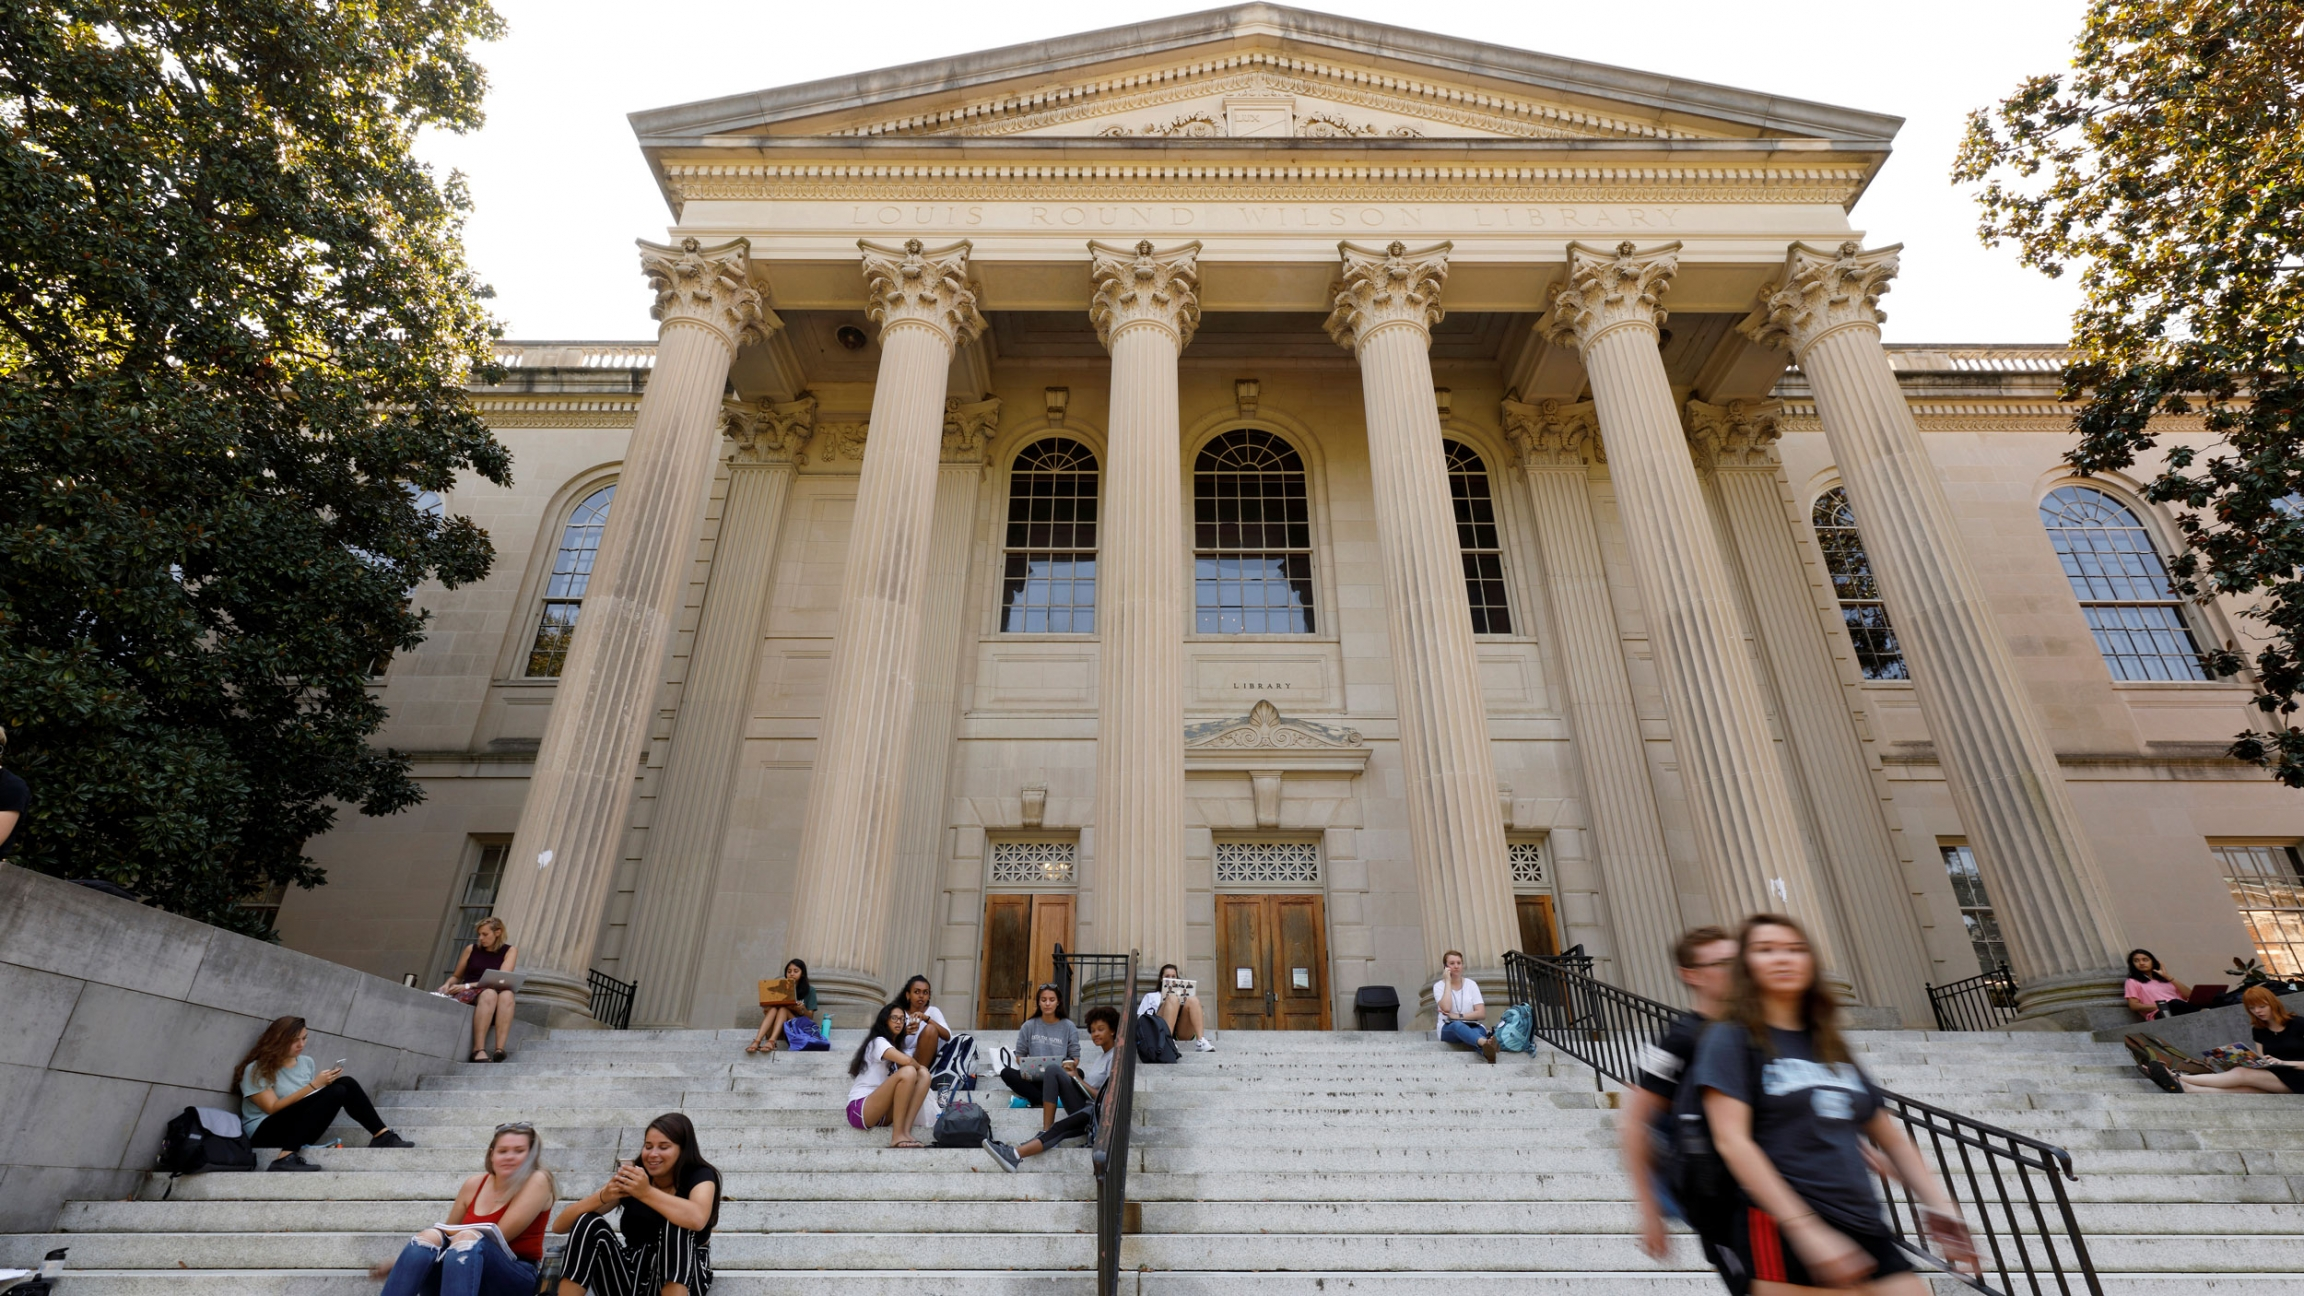 Several students are show sitting on steps with the large Greek columns at the entrance of a college library are shown in the distance.